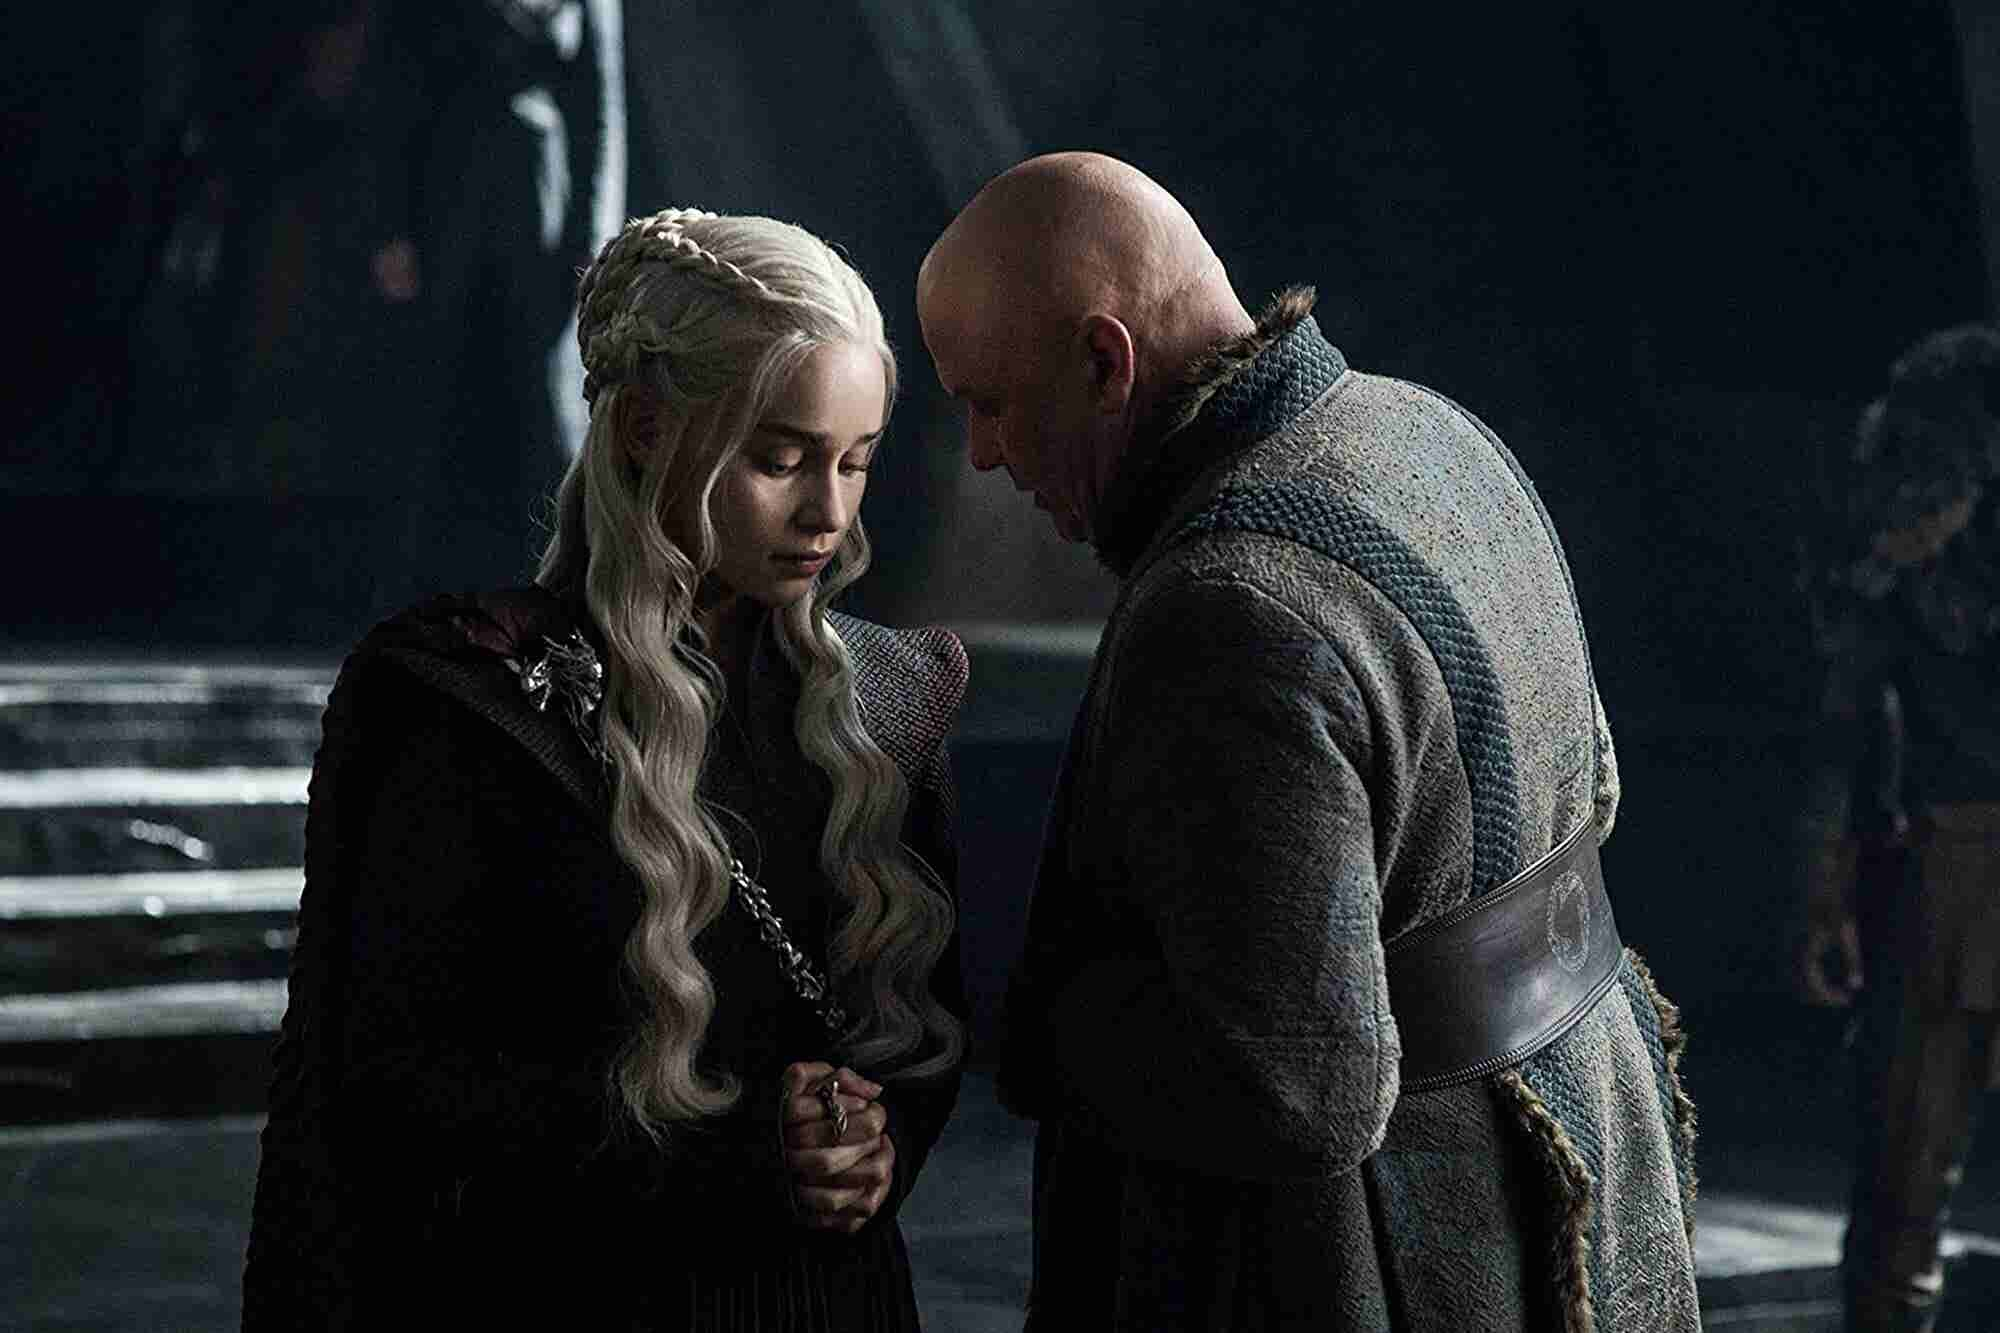 Entrepreneurial Lessons From 'Game of Thrones' and the Super Bowl